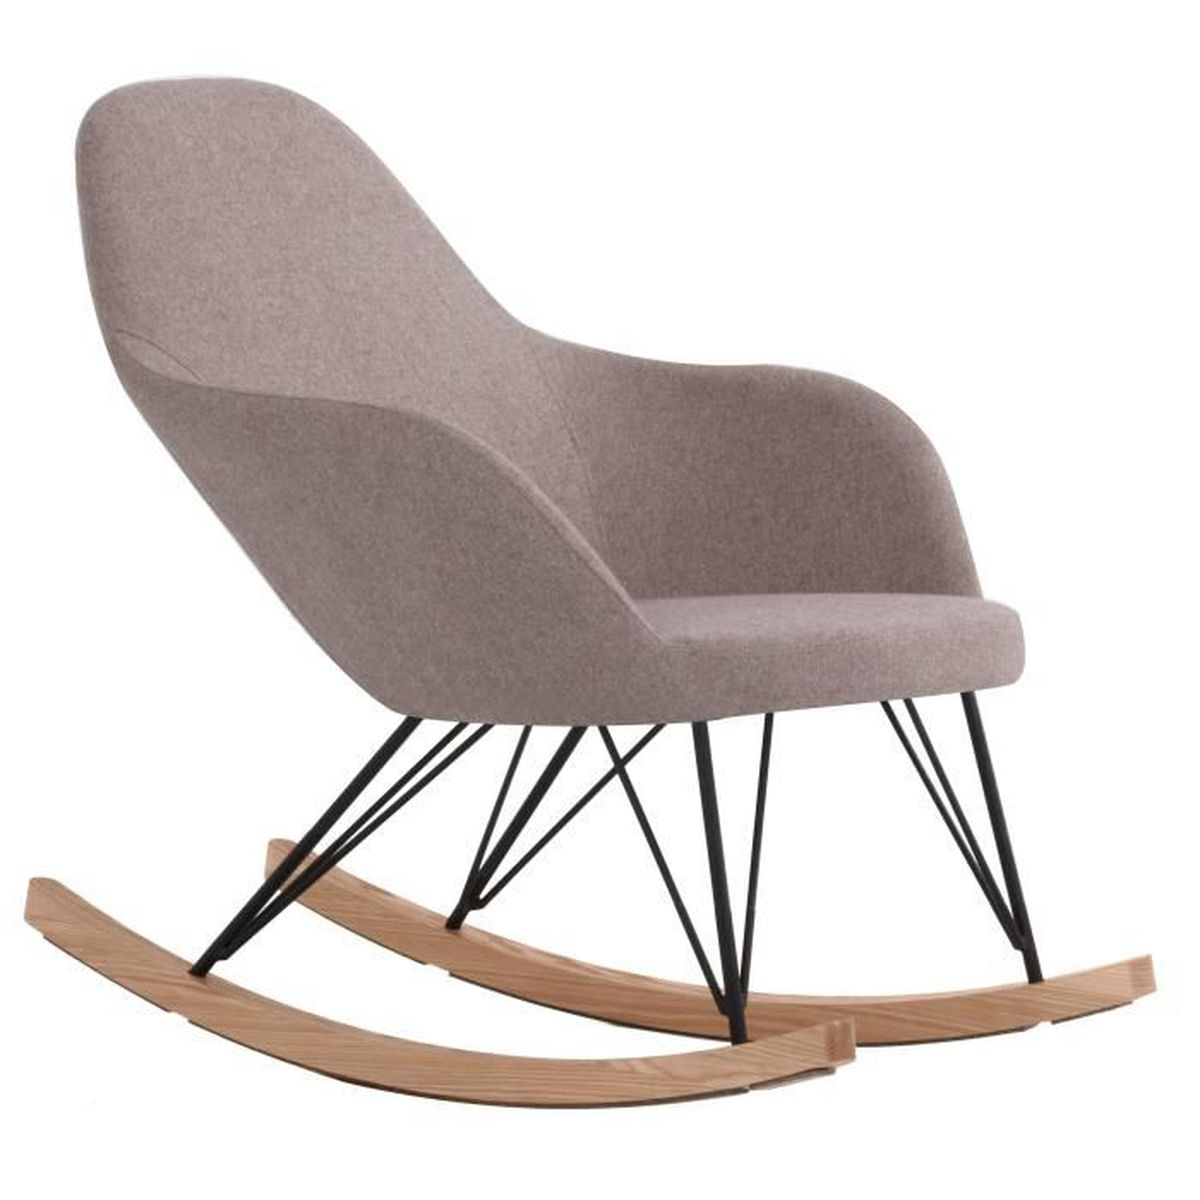 Rocking chair malibu taupe achat vente fauteuil beige - Fauteuil rocking chair design ...